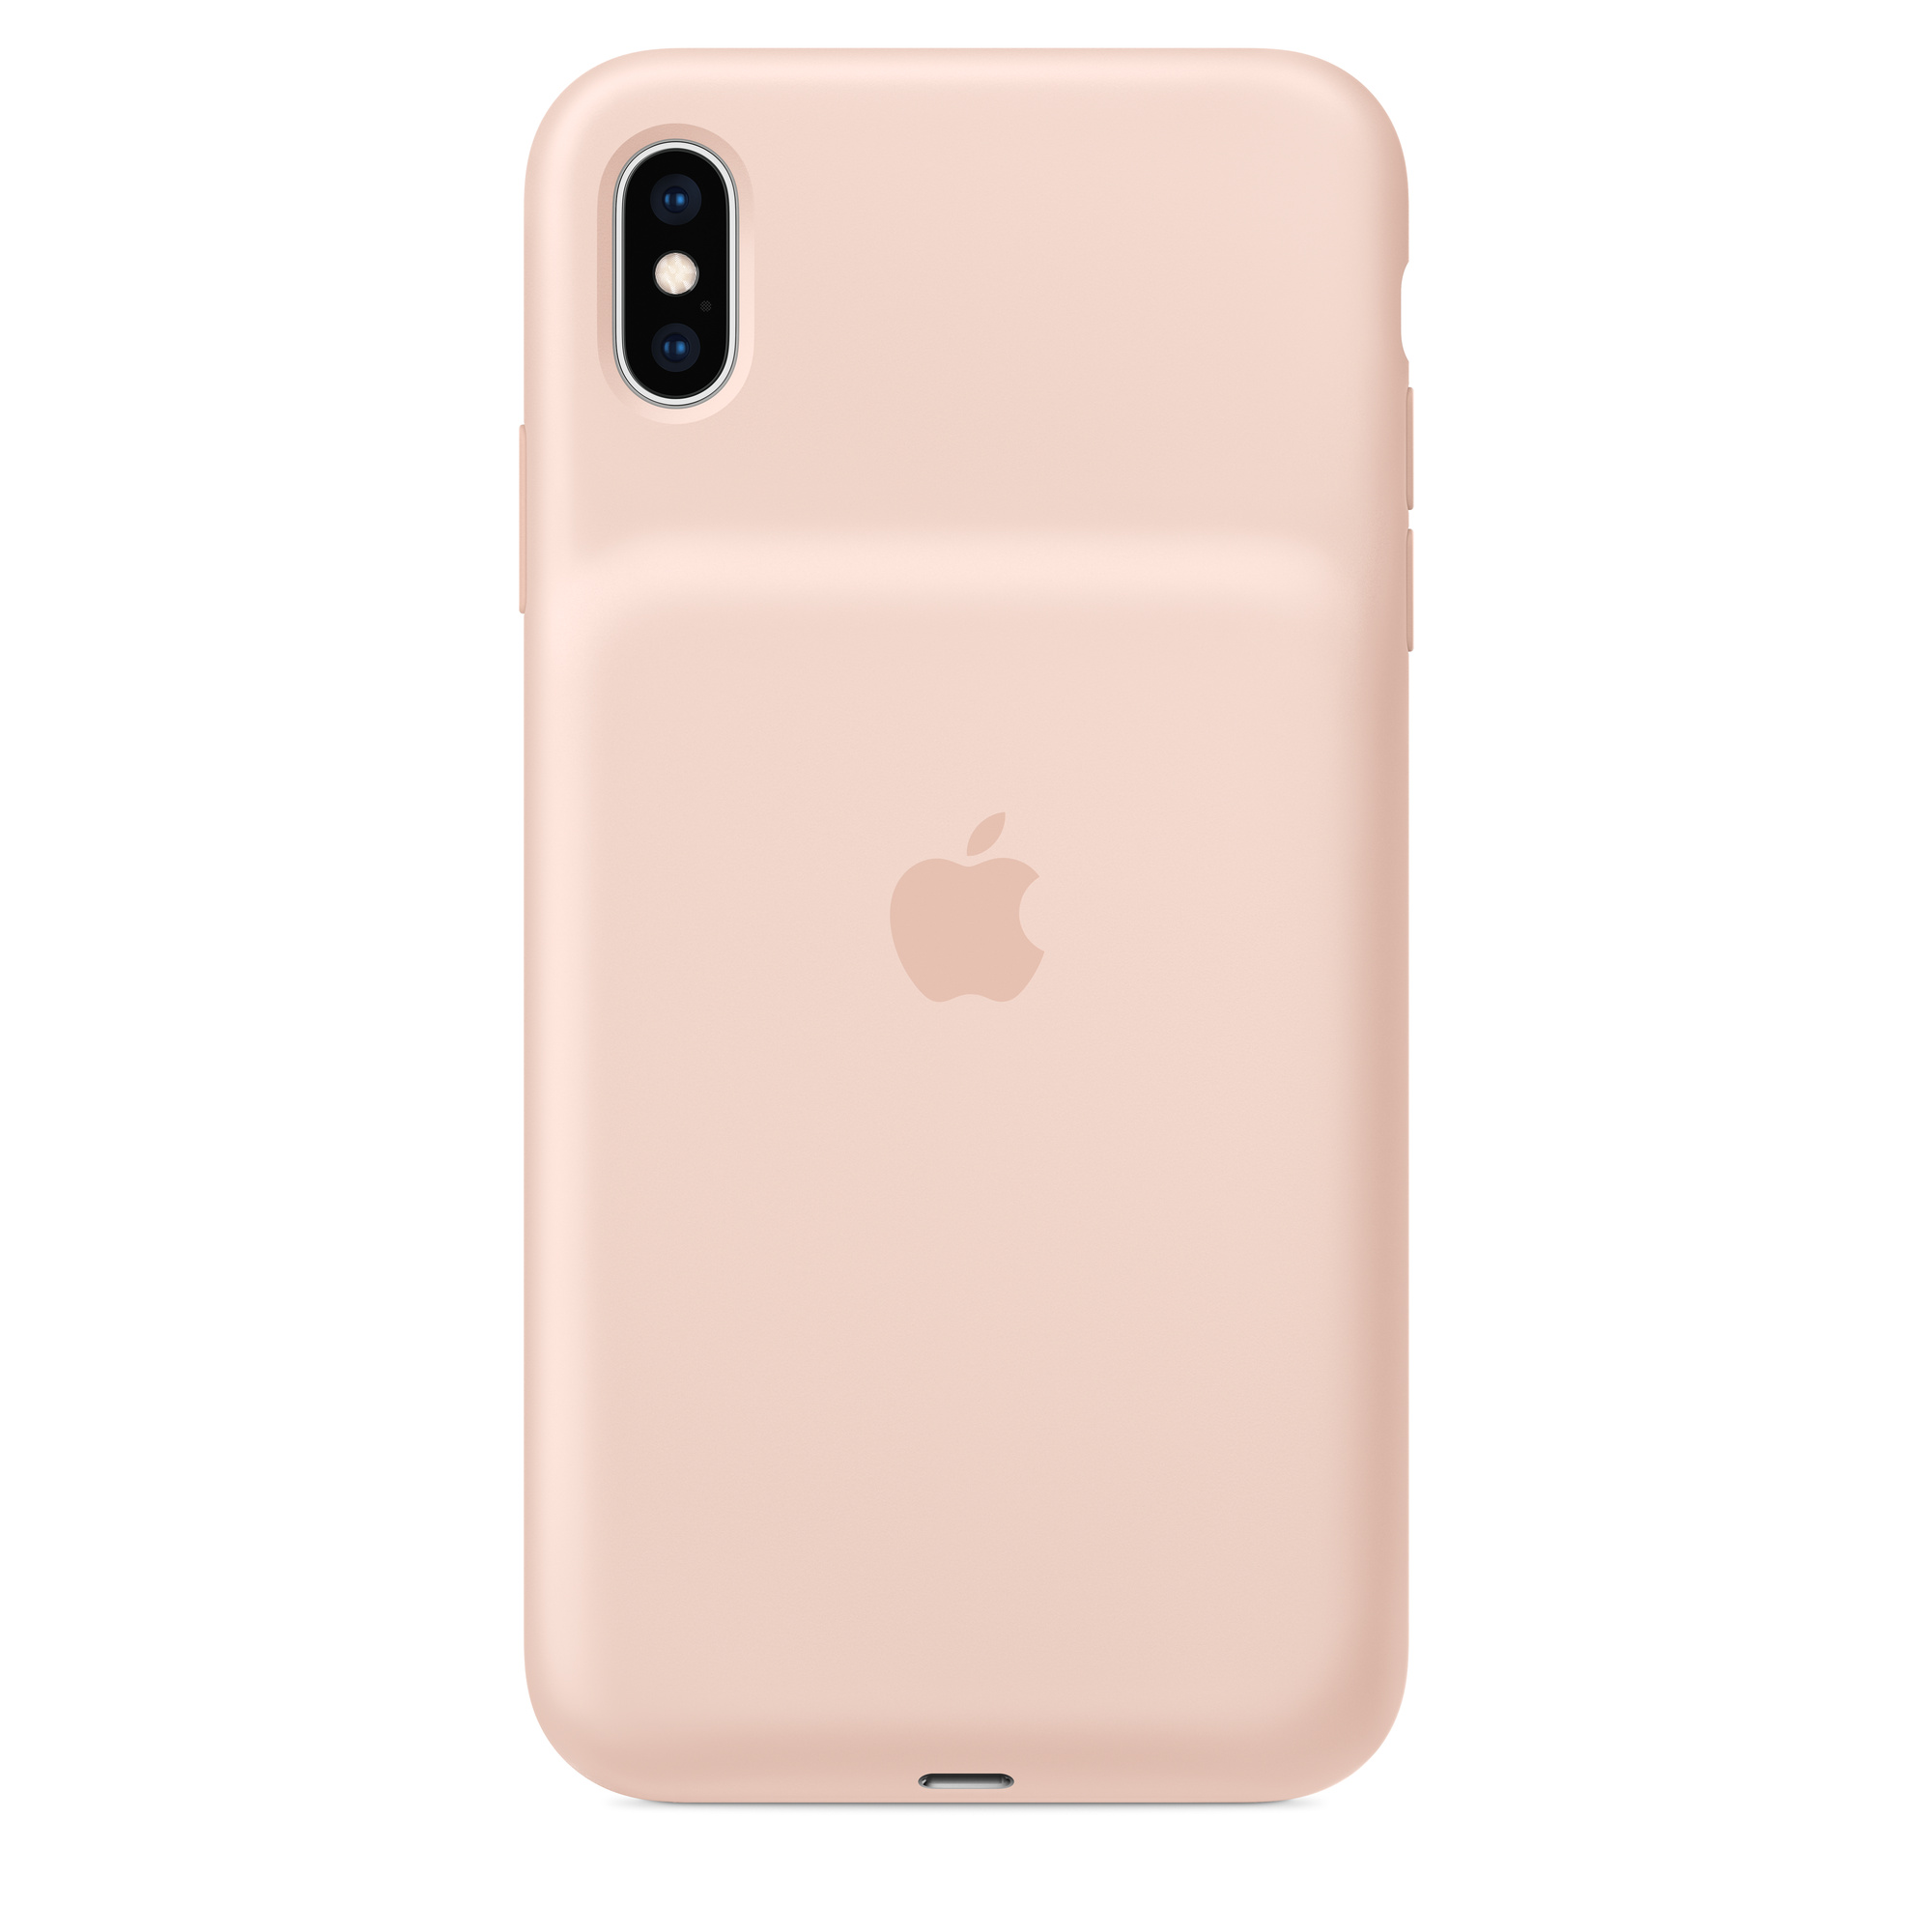 the latest e1105 f95ec iPhone XS Max Smart Battery Case - Pink Sand